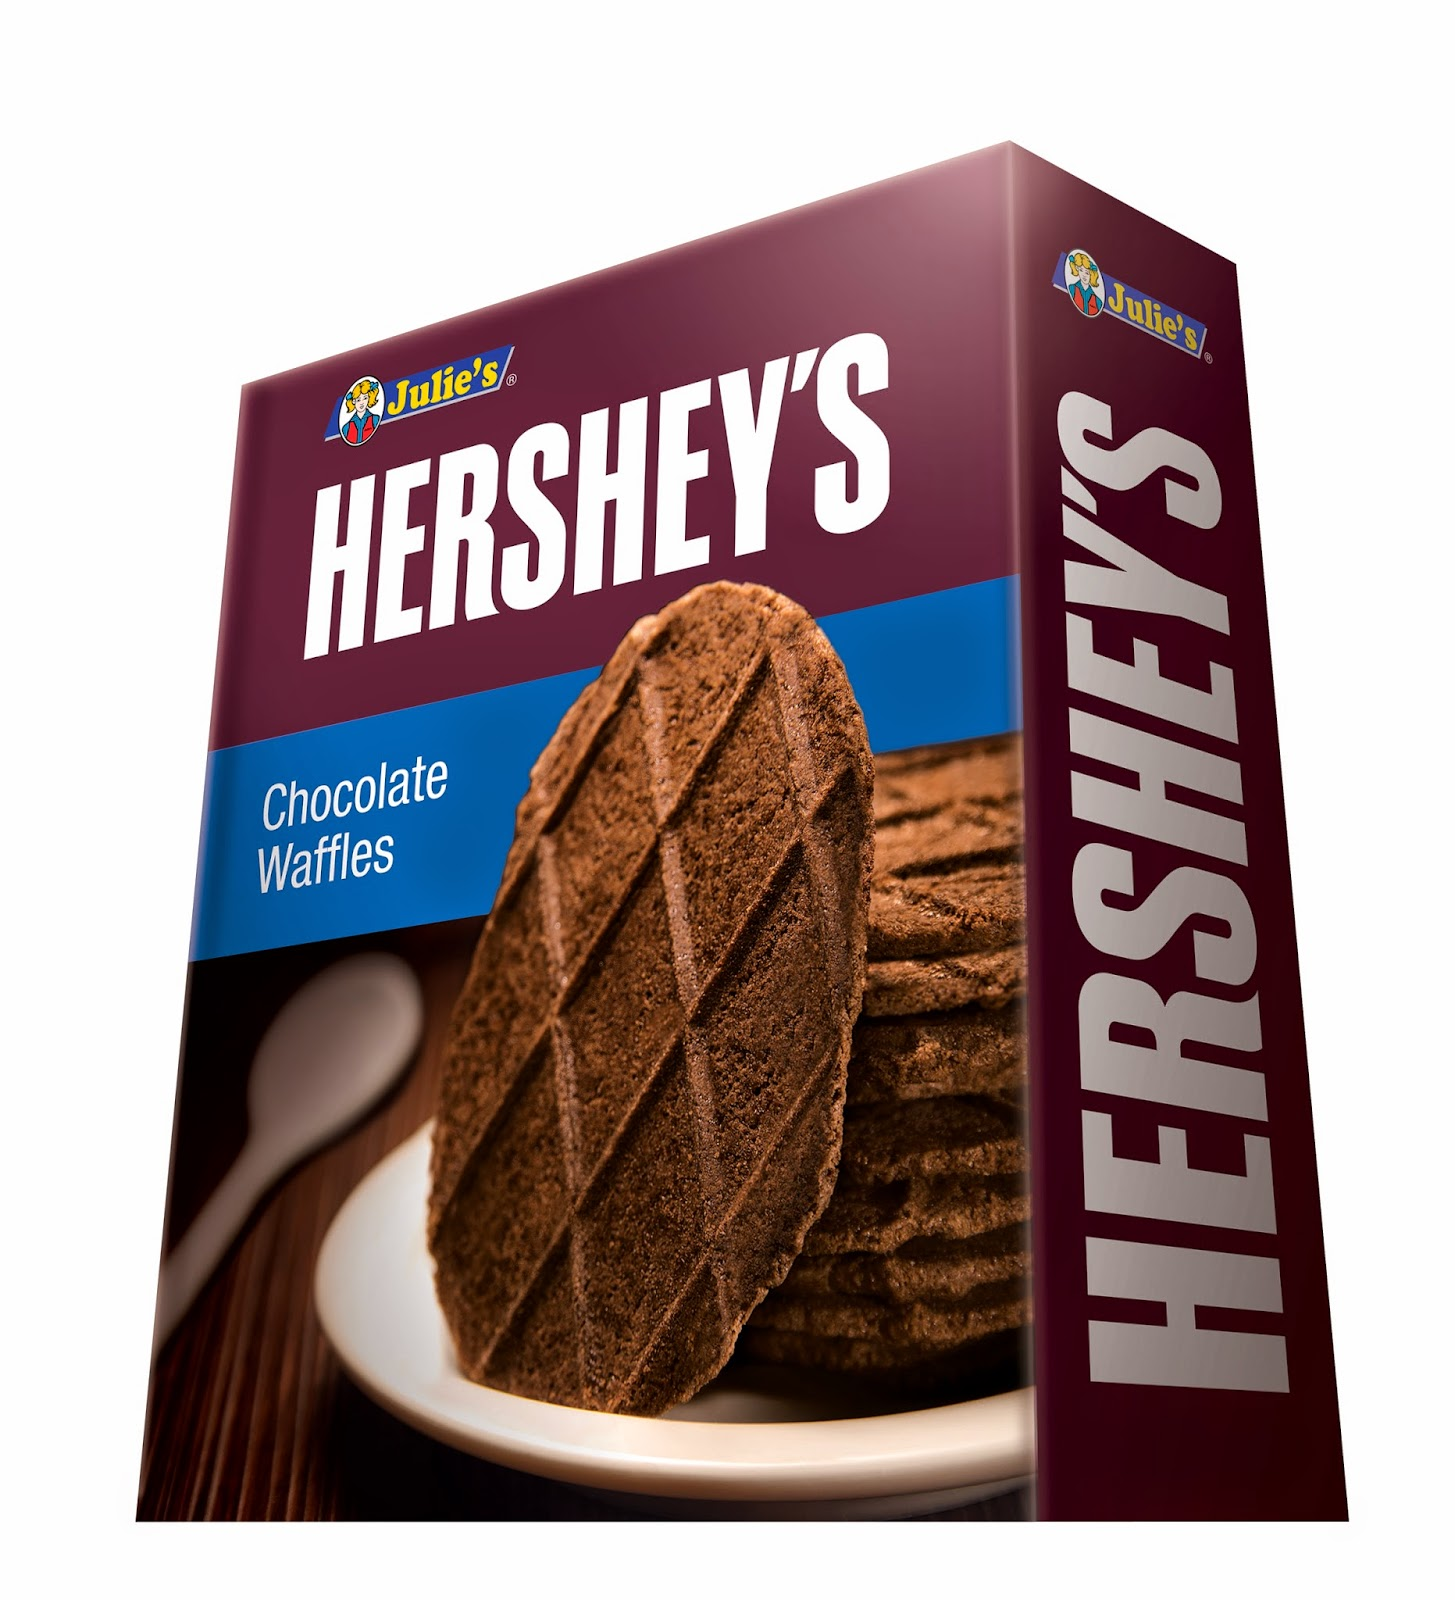 Julie's Hershey's Chocolate Waffles